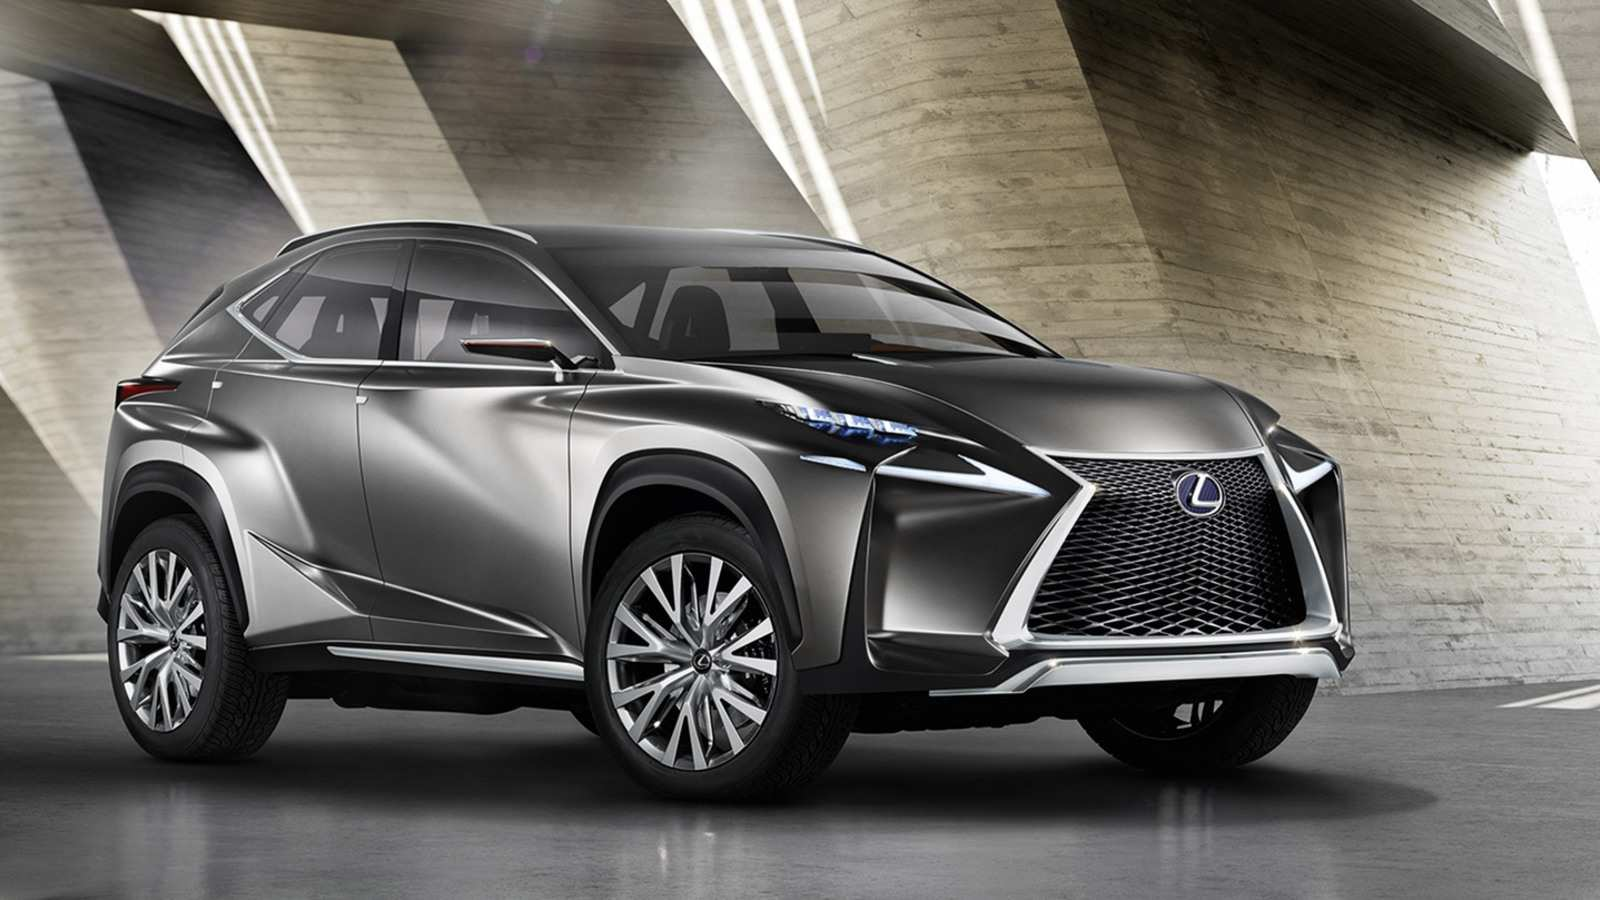 47 New Lexus Nx 2020 News Model with Lexus Nx 2020 News